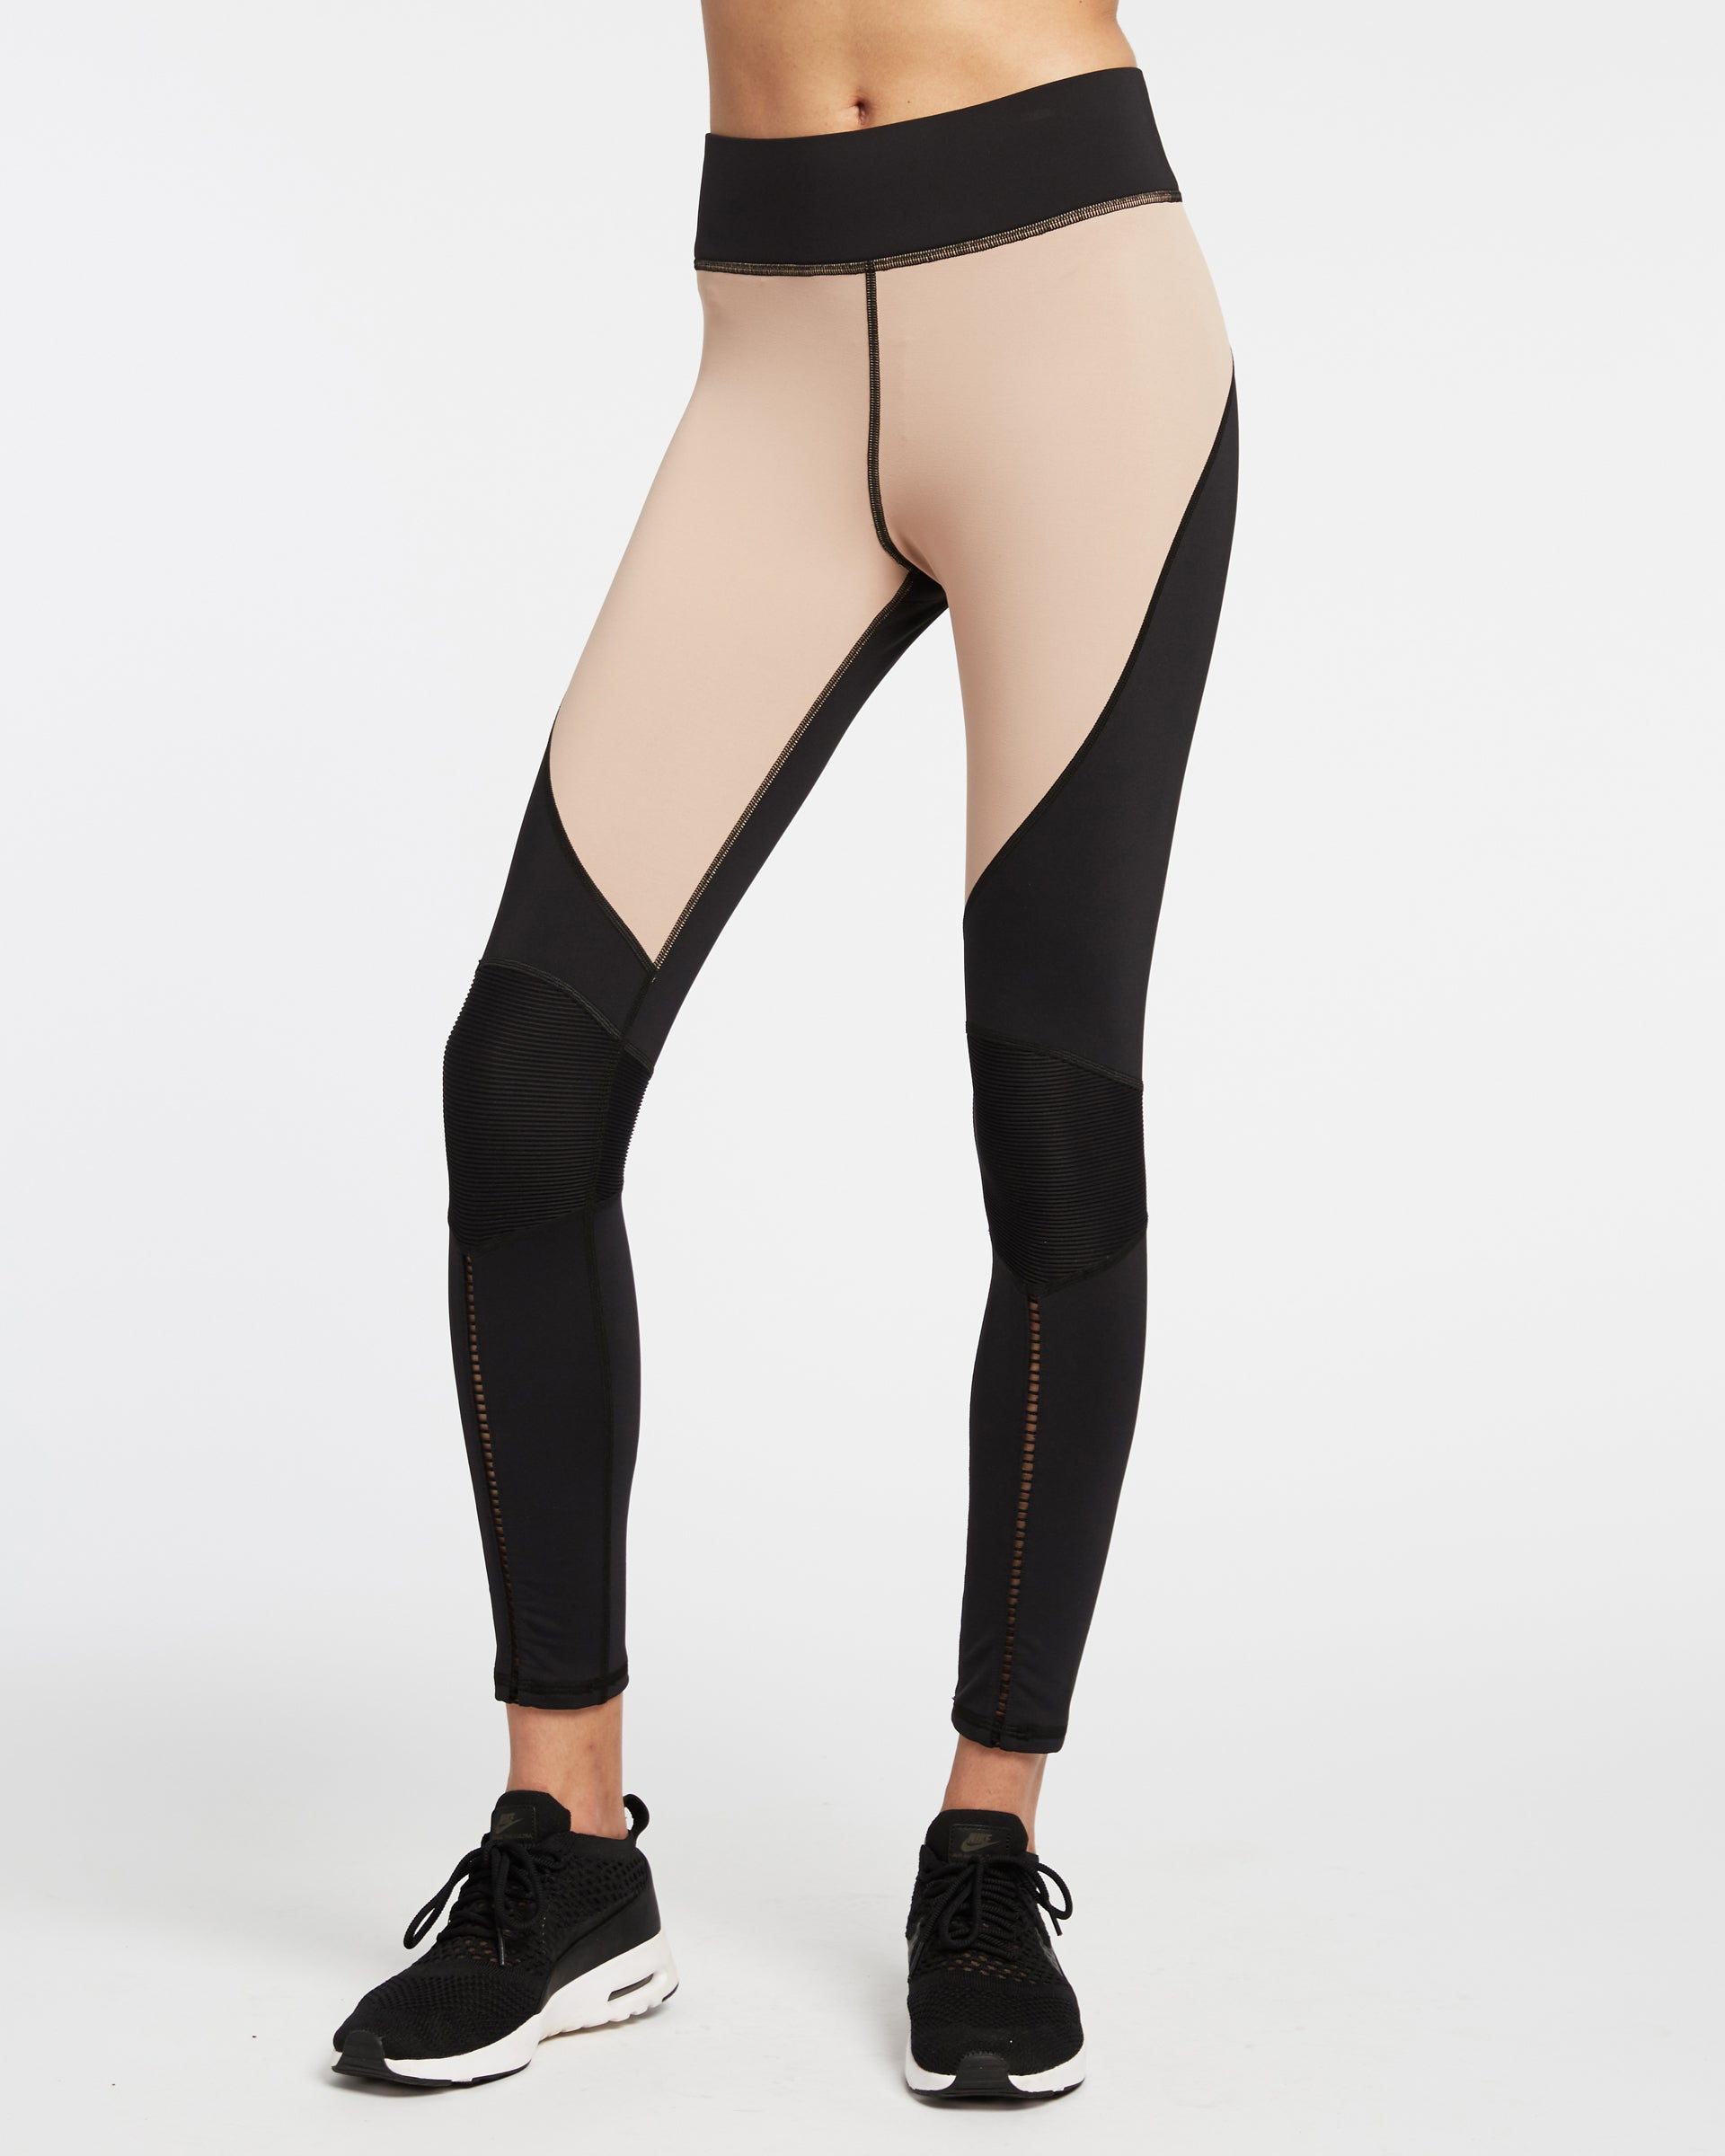 Shift Legging - Nude Pink